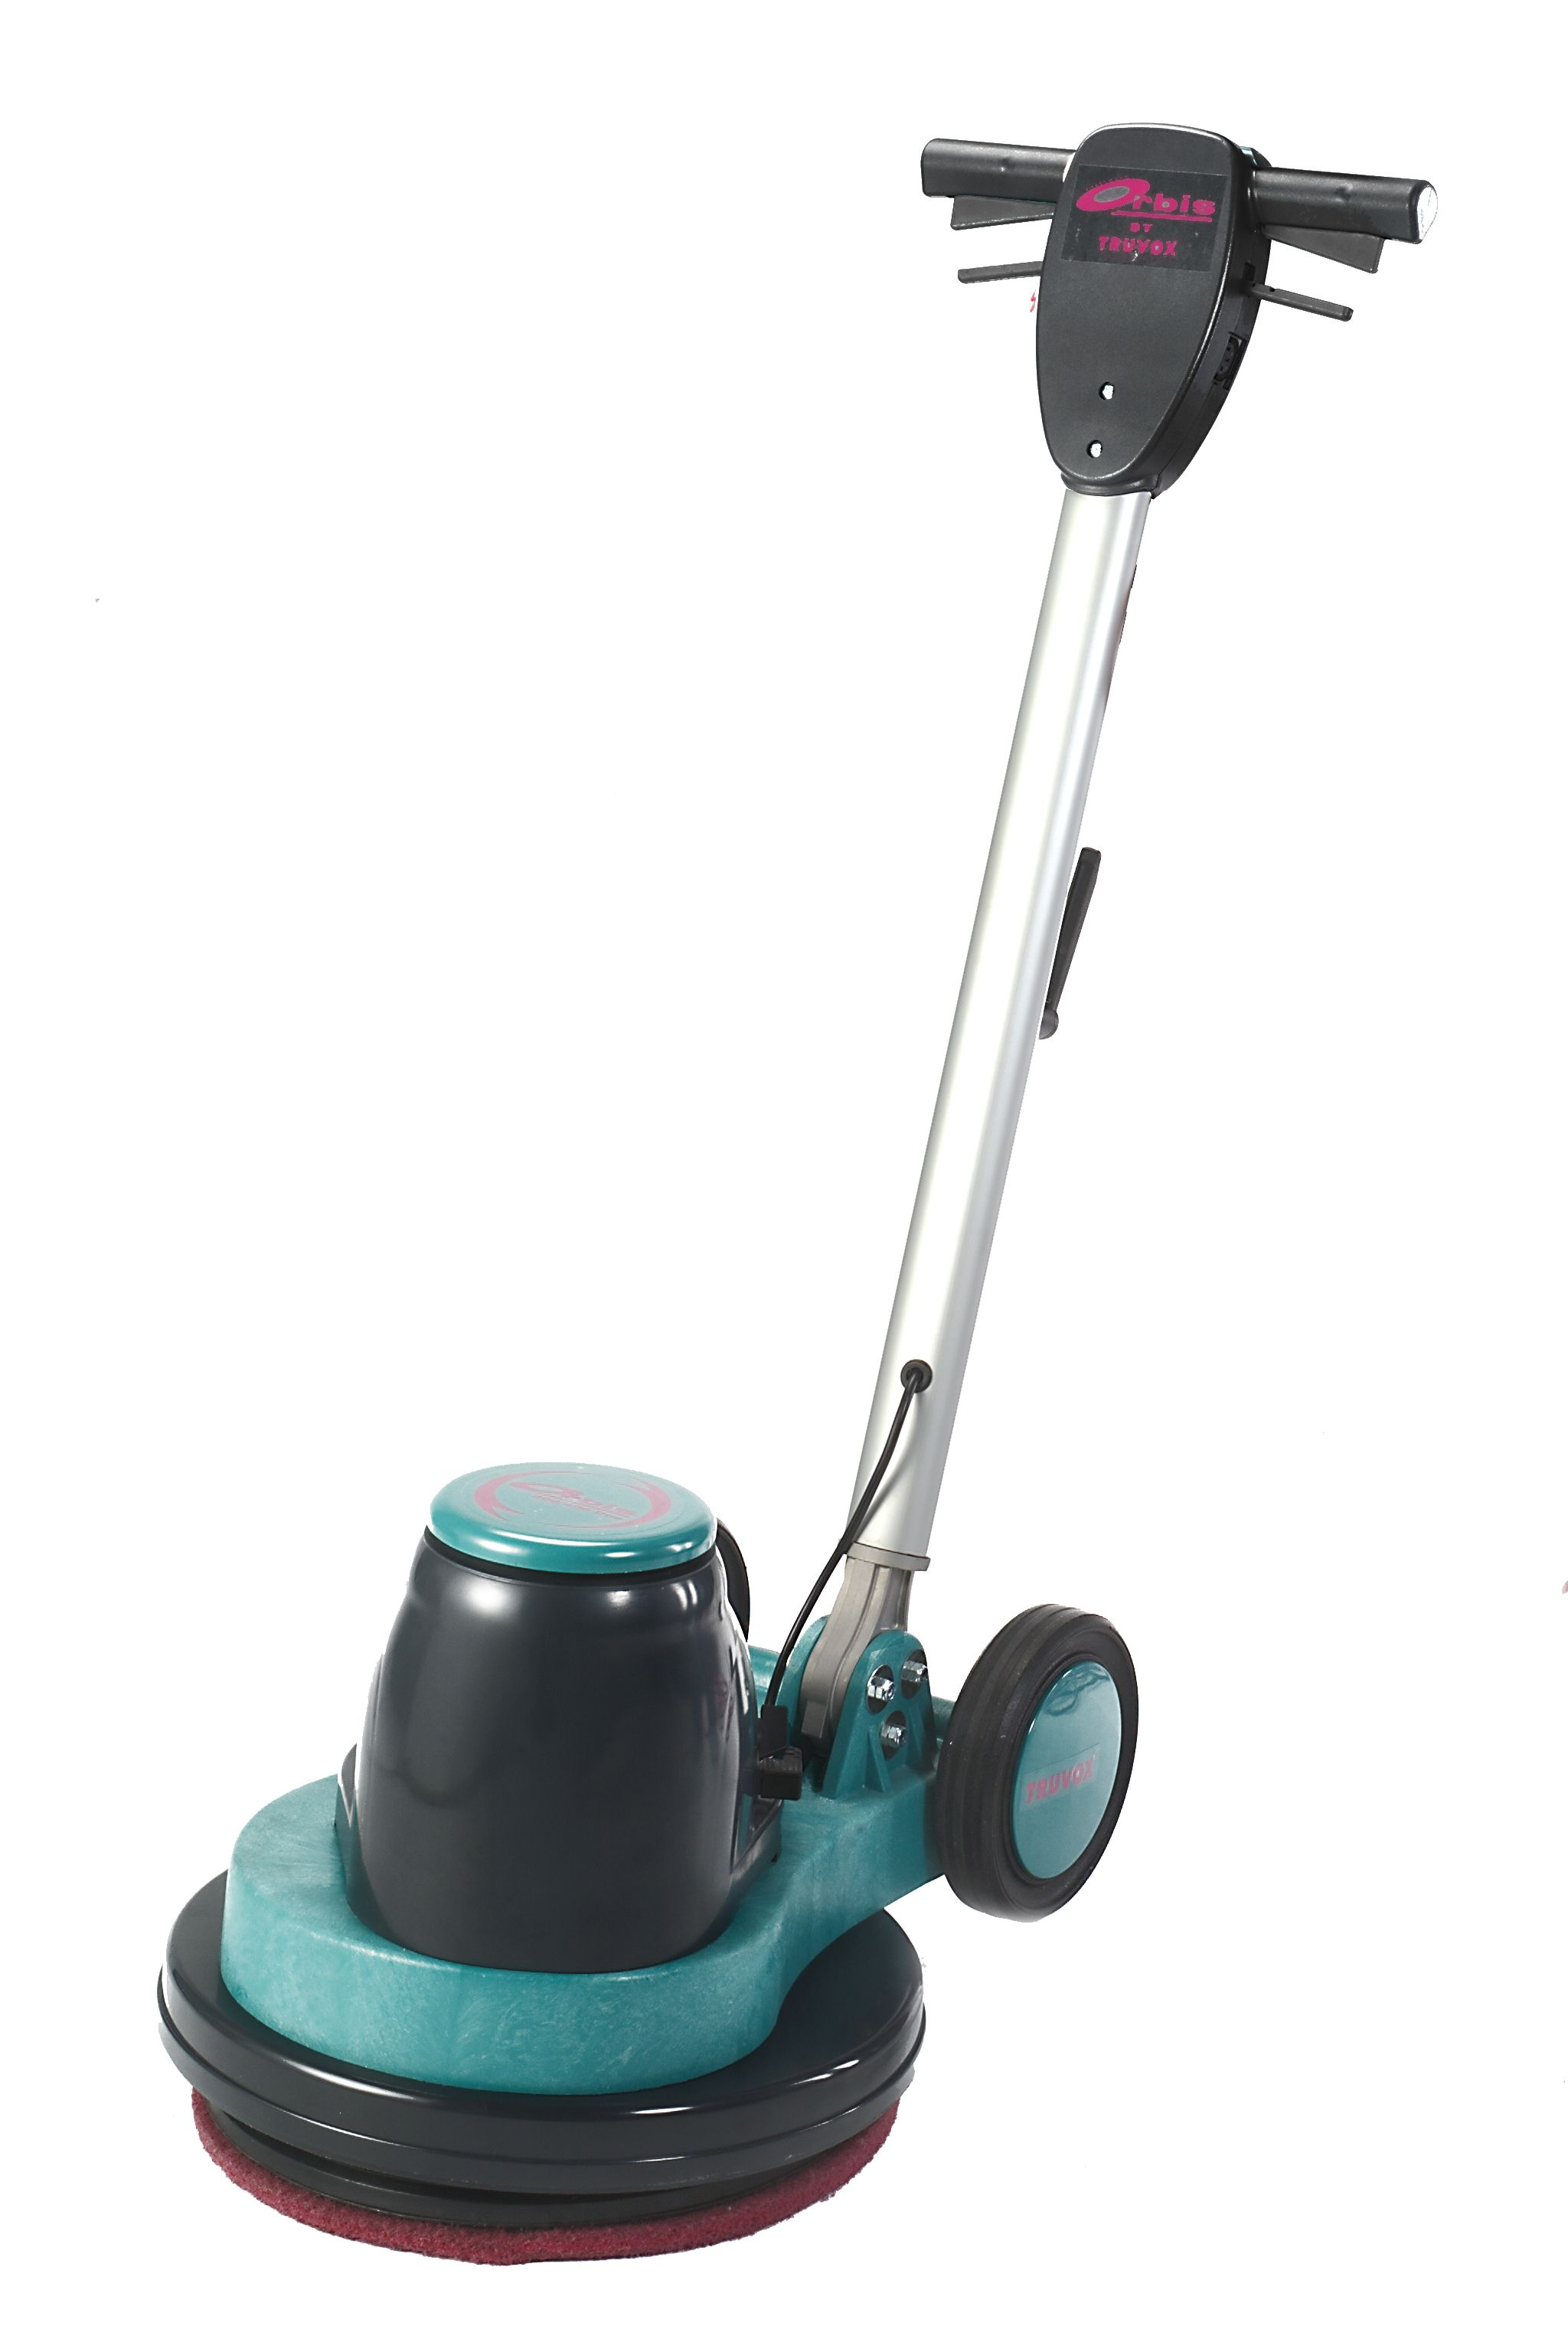 Truvox Orbis Duo Speed 200 400 17 Rotary Cleaning Upholstery Floor Polishers Cleaning Items